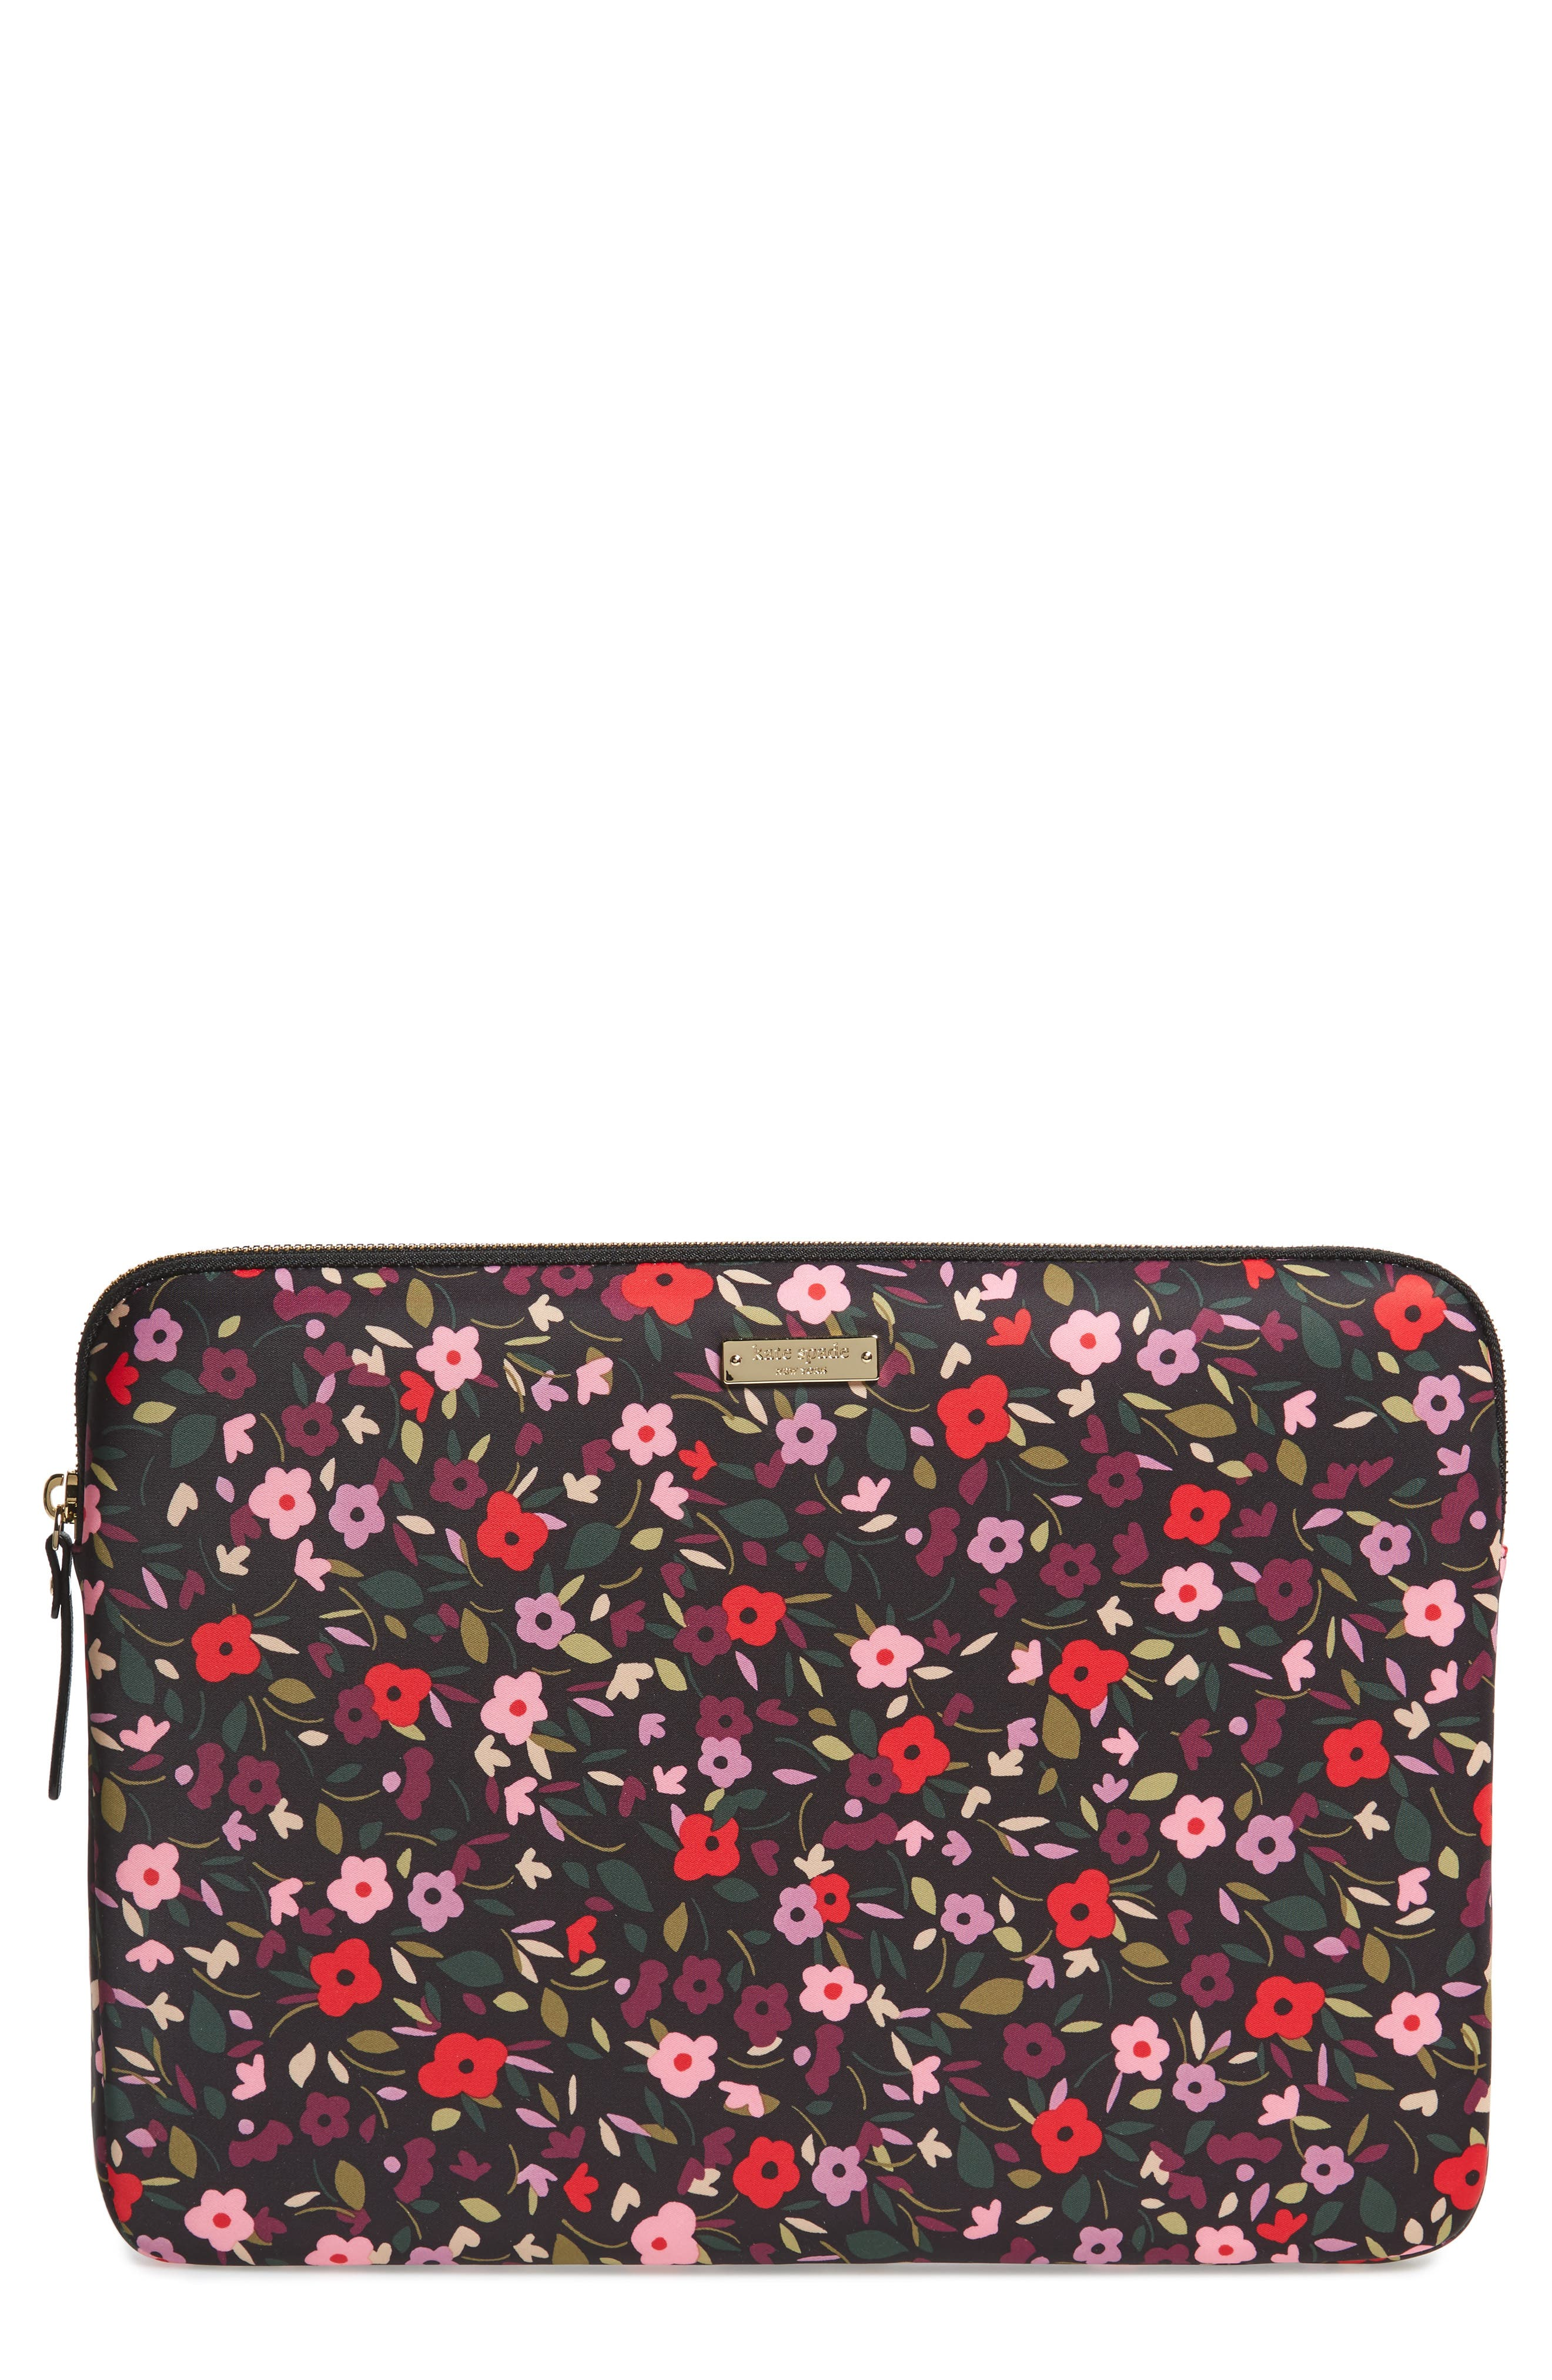 kate spade new york boho floral 13-inch laptop sleeve